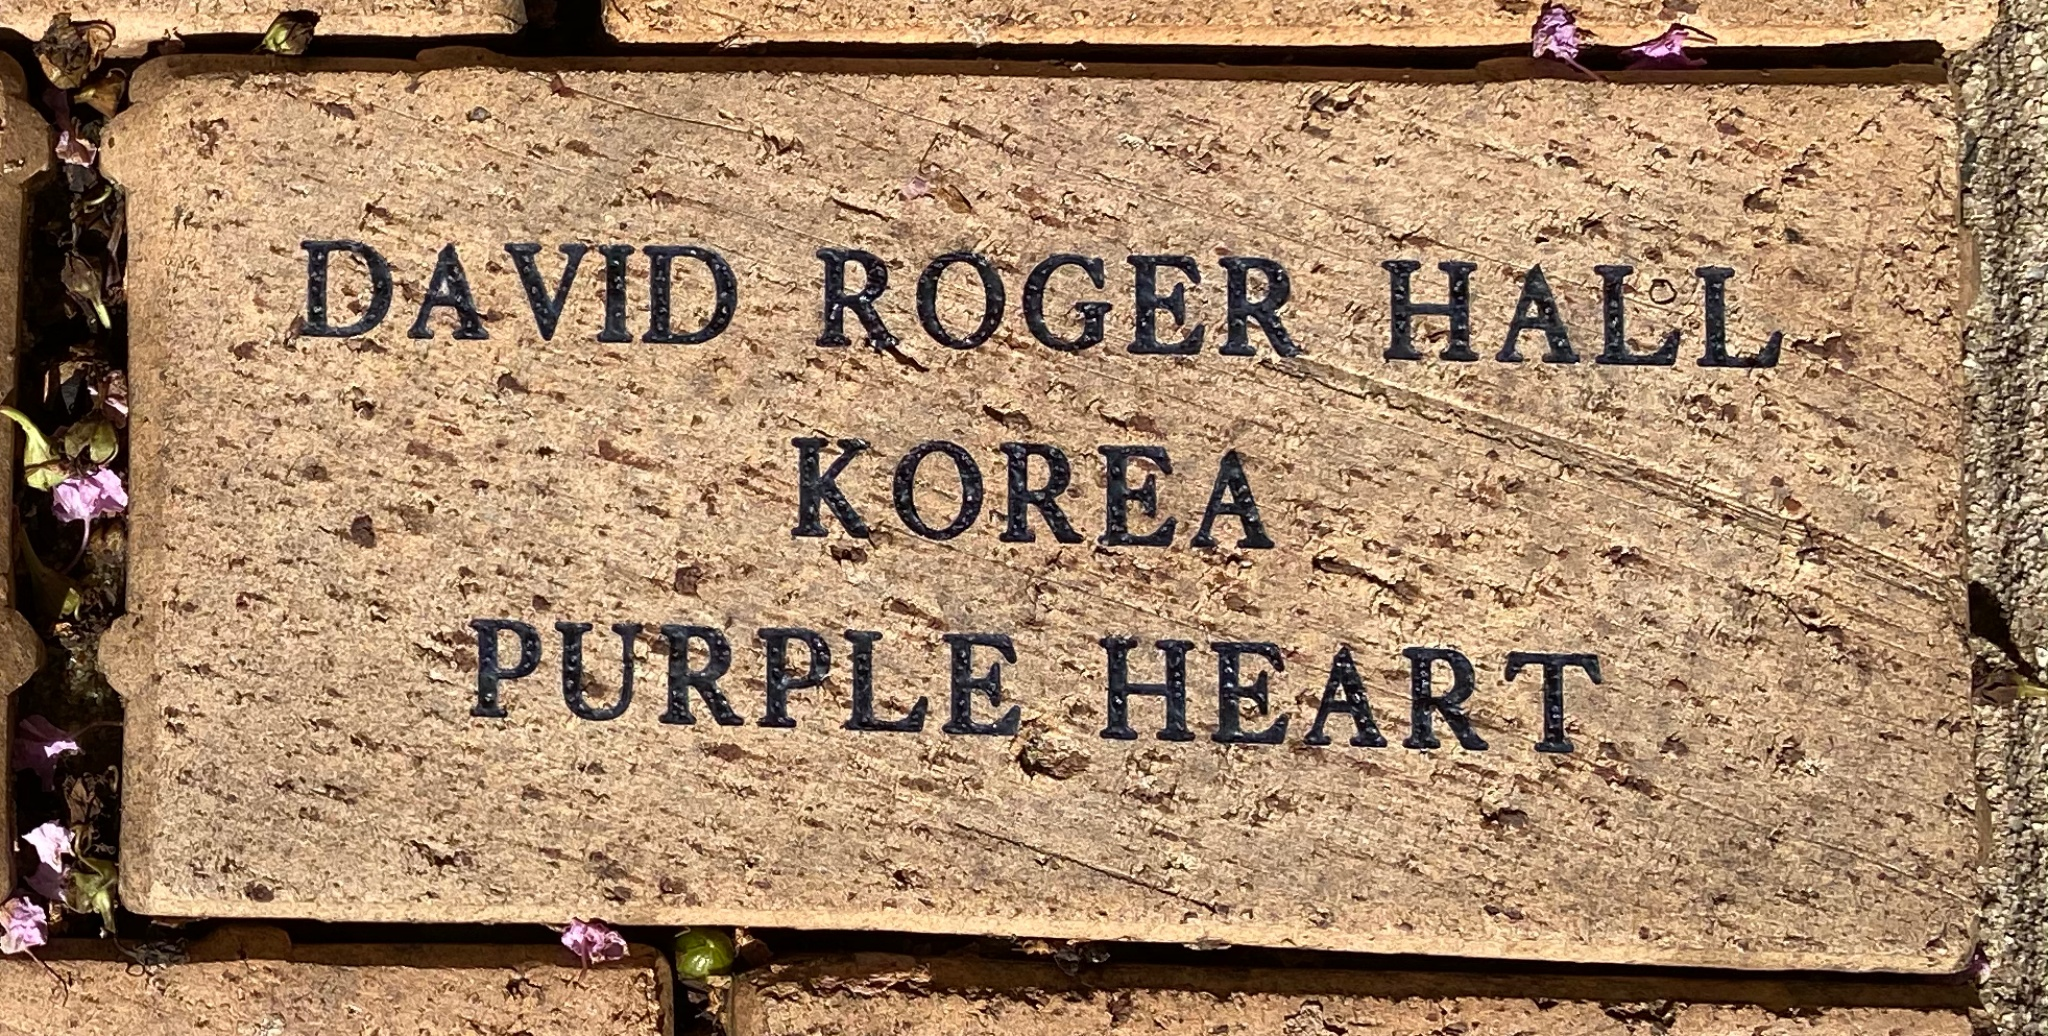 DAVID ROGER HALL KOREA PURPLE HEART